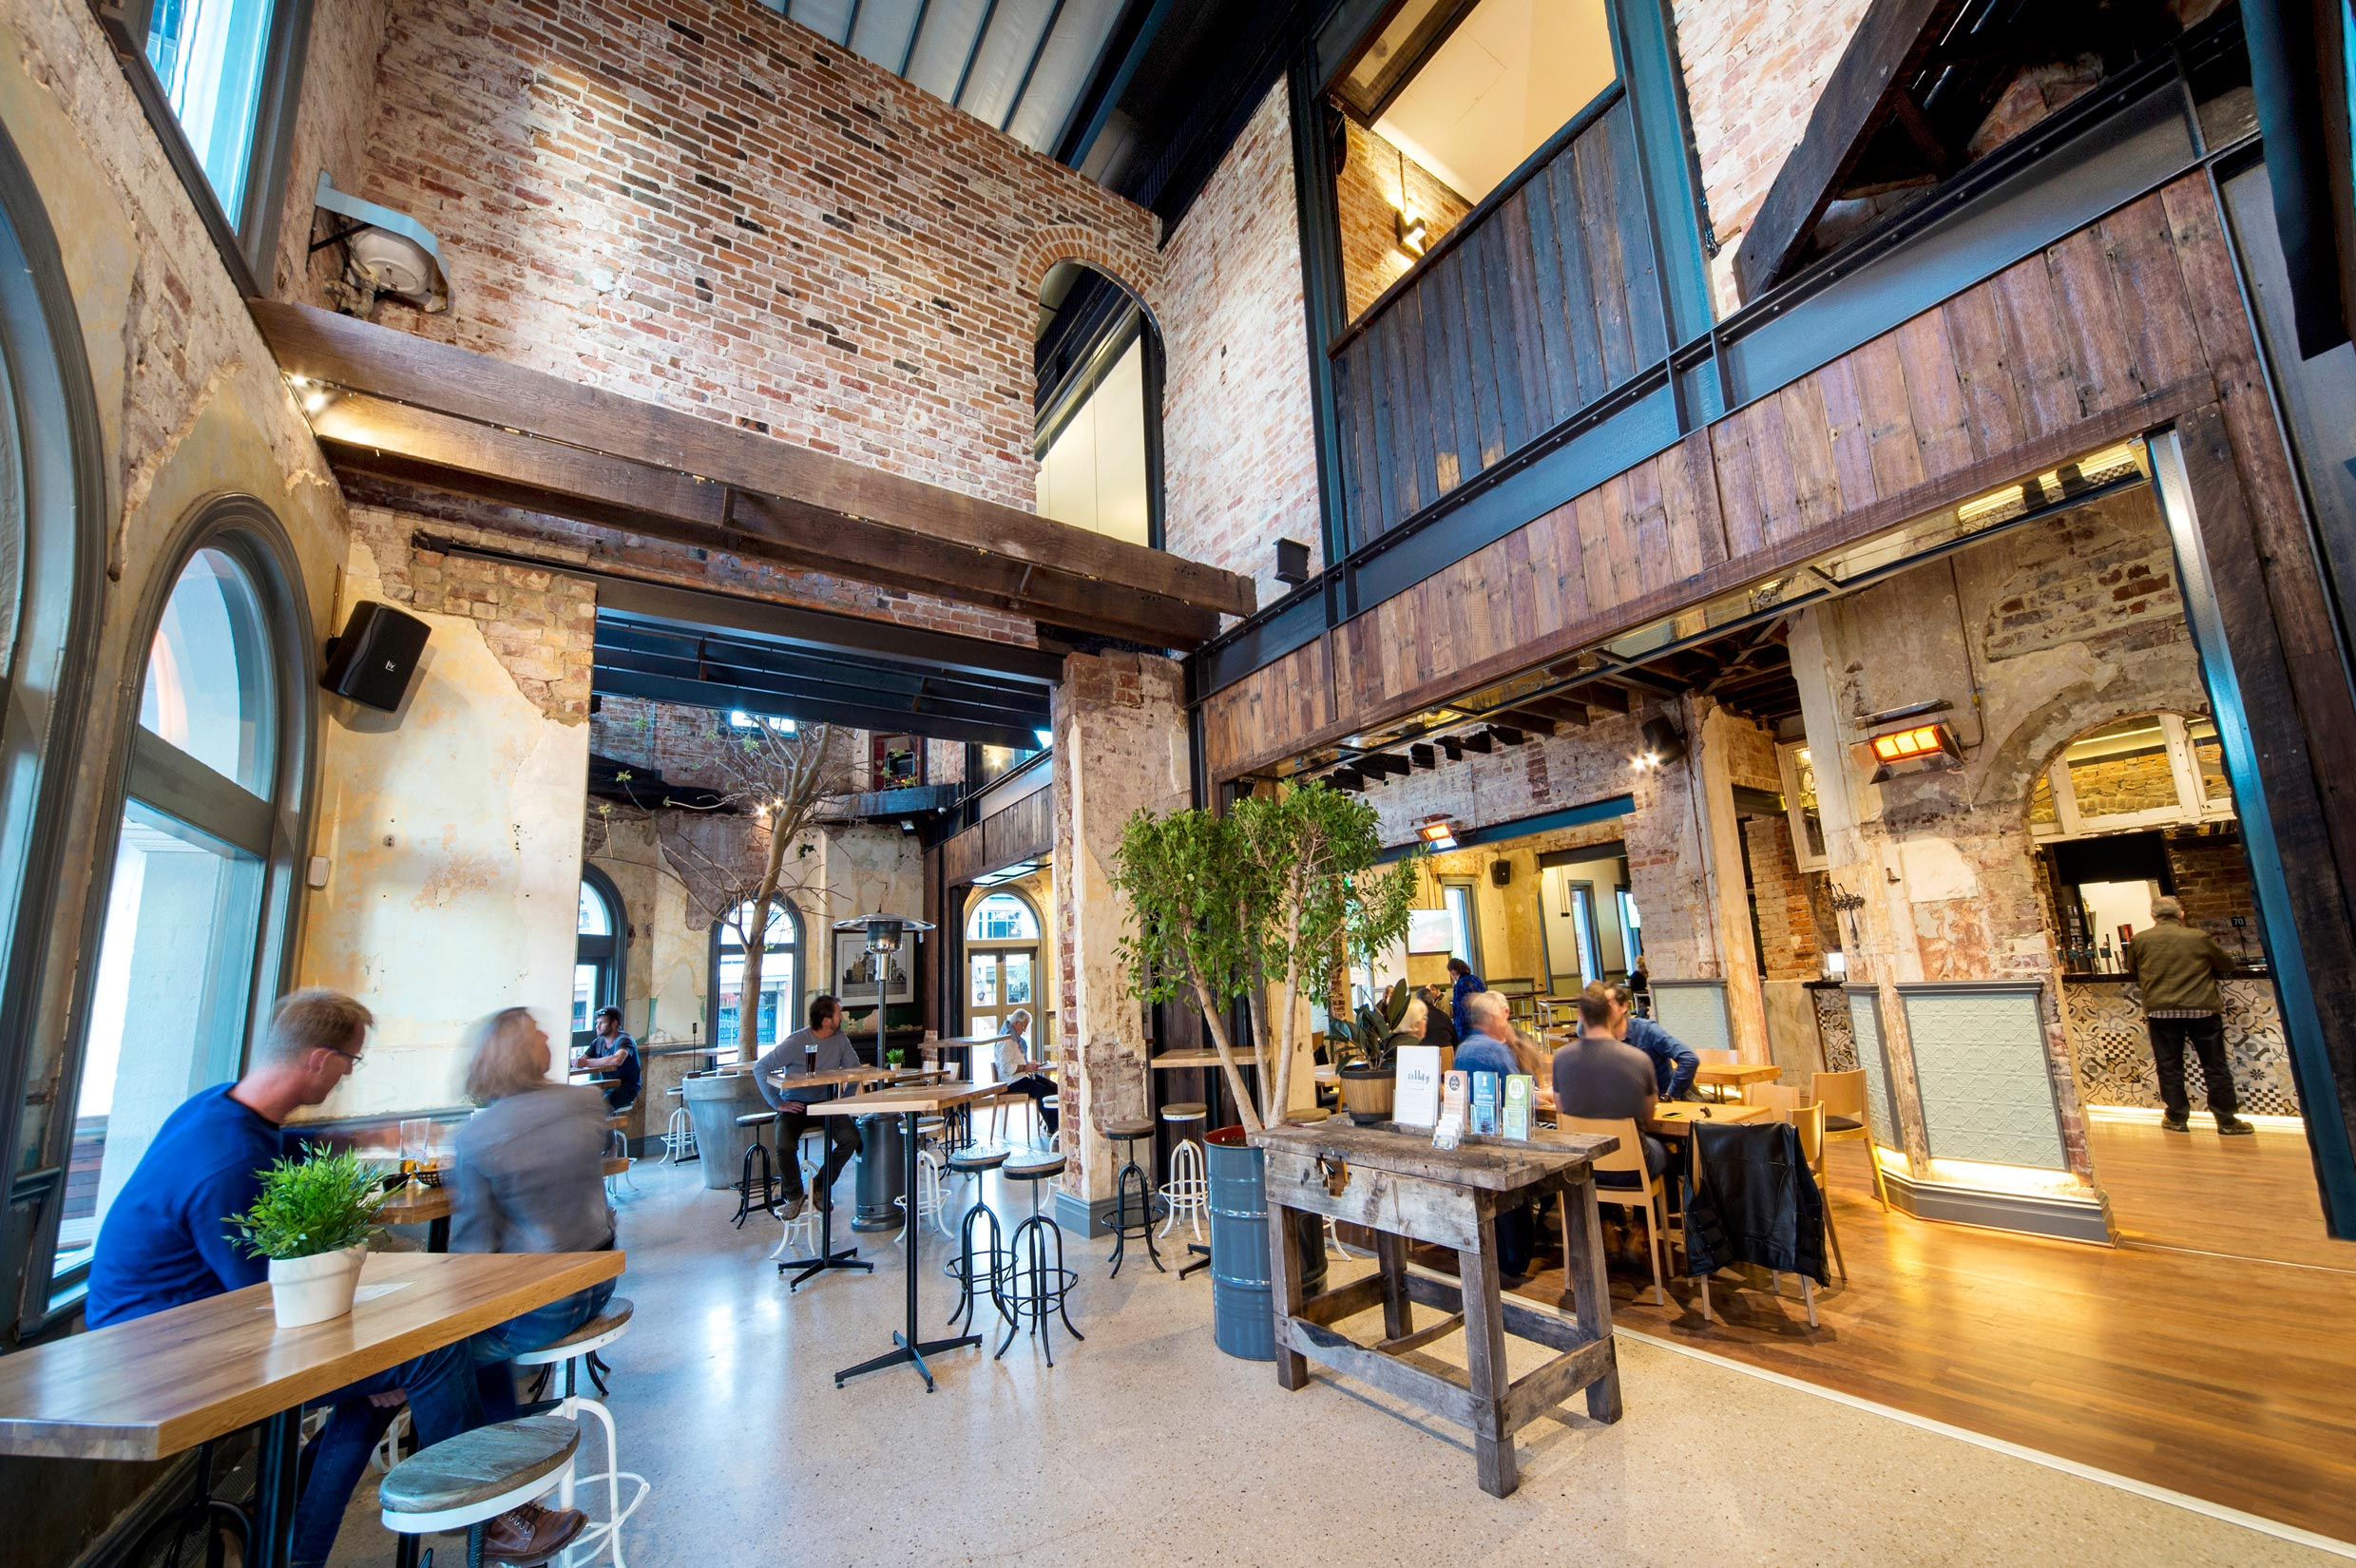 heritage dining room at the Guildford Hotel with brick walls, archways, and restored timber beams